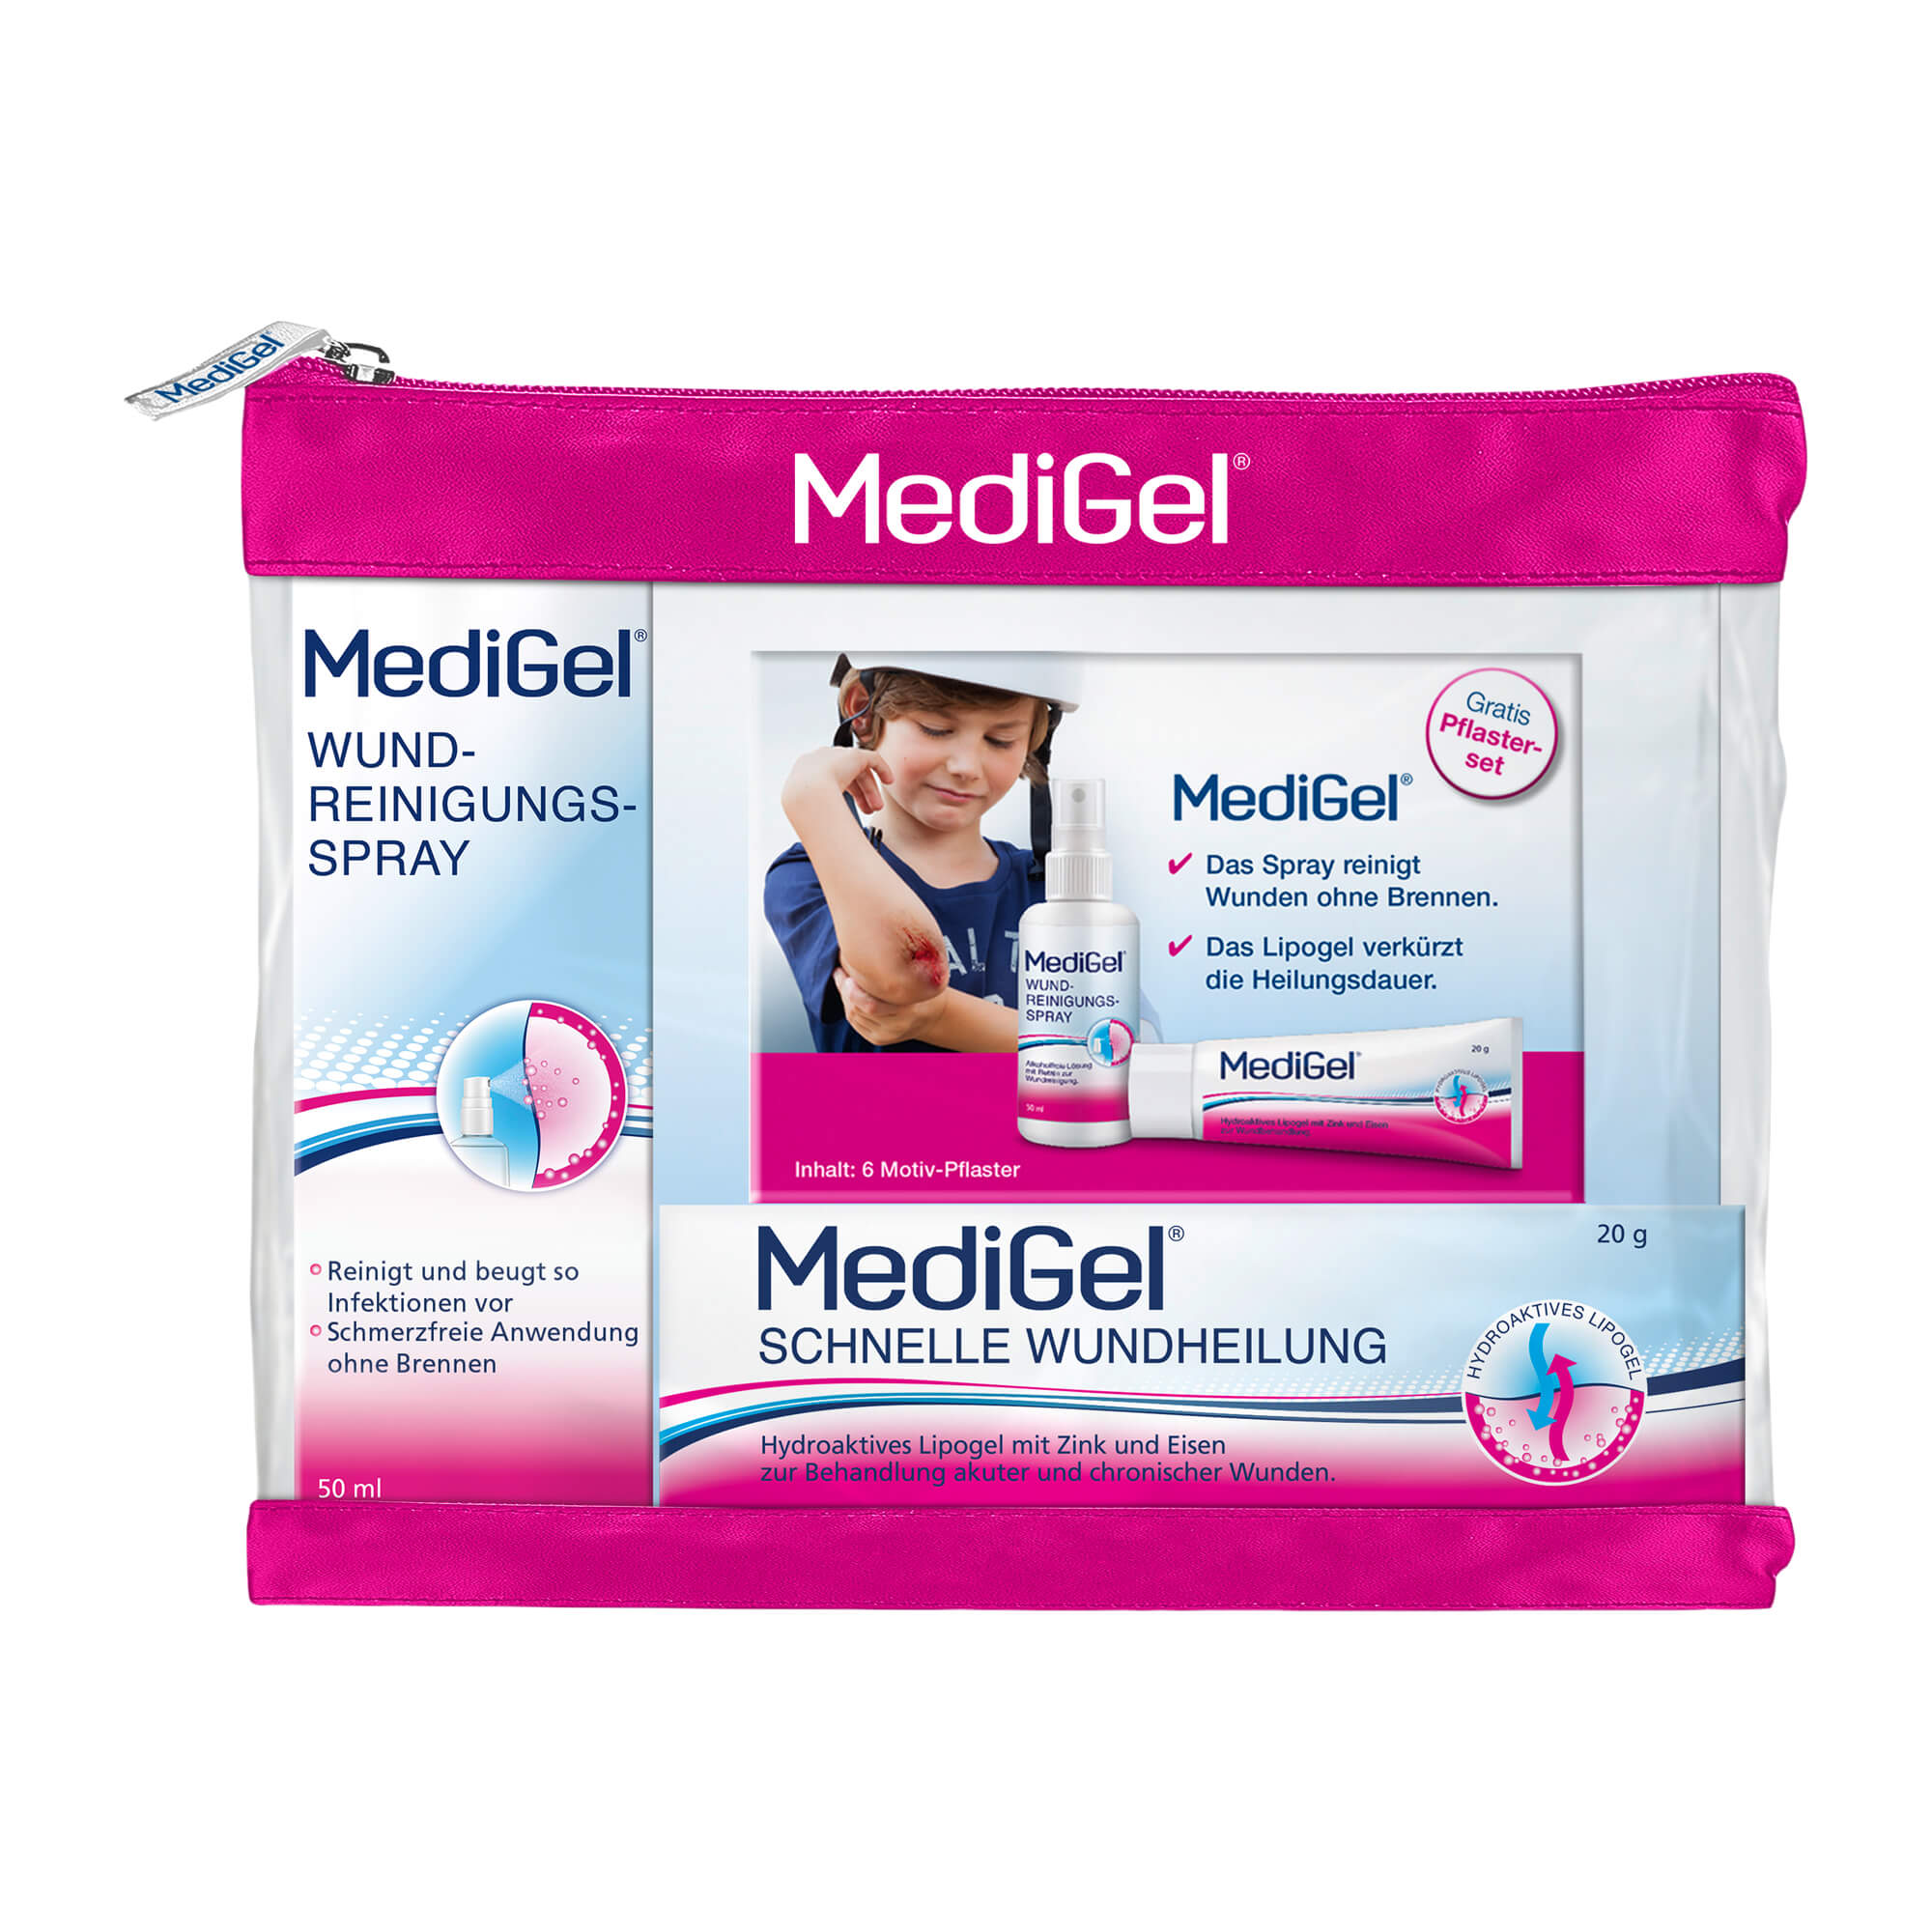 MediGel Wundversorgungs-Set